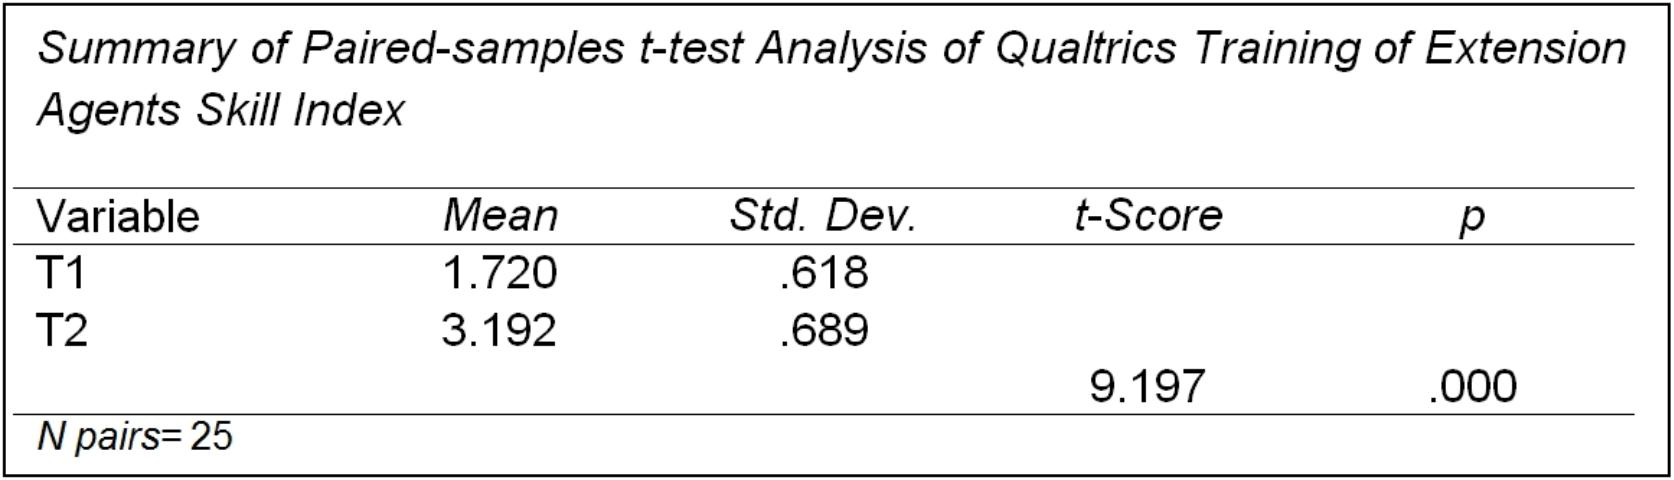 Figure 7. An example of a paired-samples t-test results table created with the EZAnalyze plug-in for Excel.